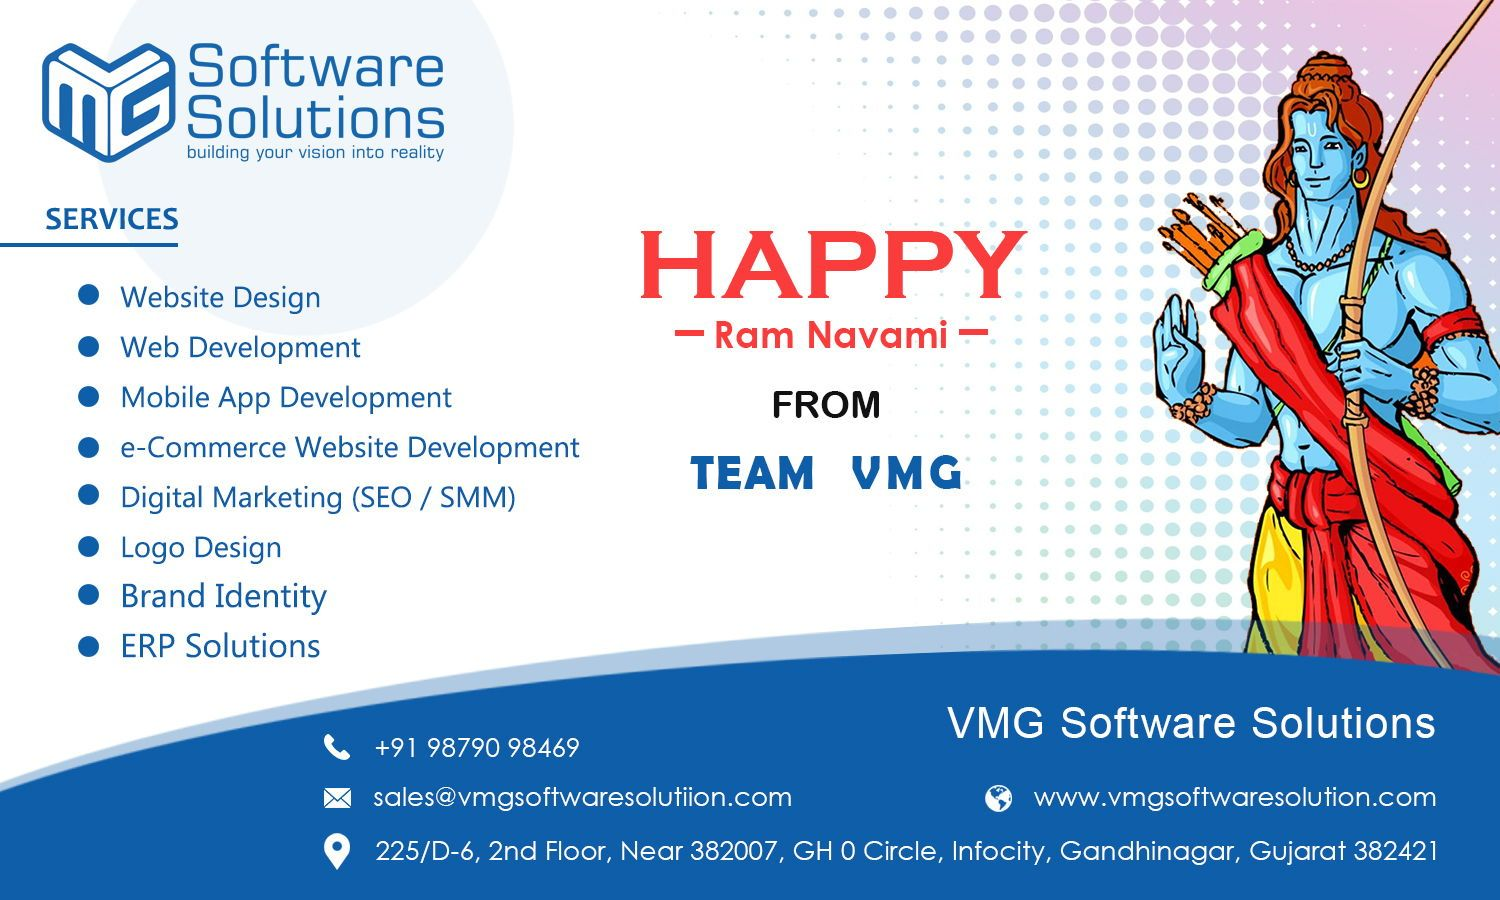 May Lord Ram Shower His Blessings On You And Your Family I Wish Joy Harmony And Prosperity On Ram Navmi For App Development Web Design Company Website Design